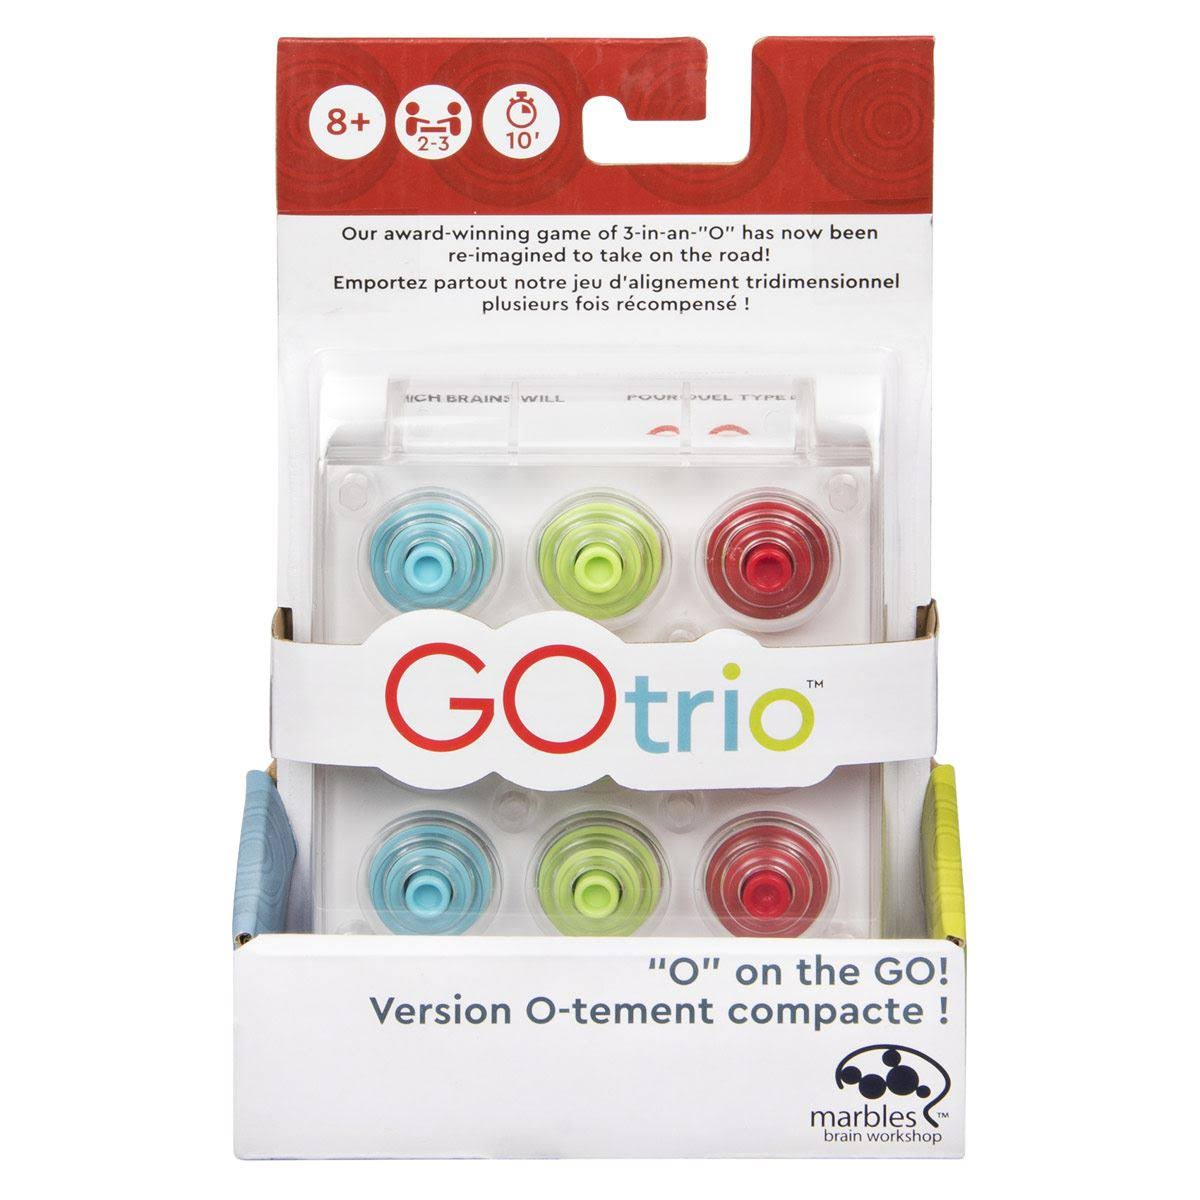 Gotrio Game by Marbles Brain Workshop, Travel Game for Players Aged 8 & Up